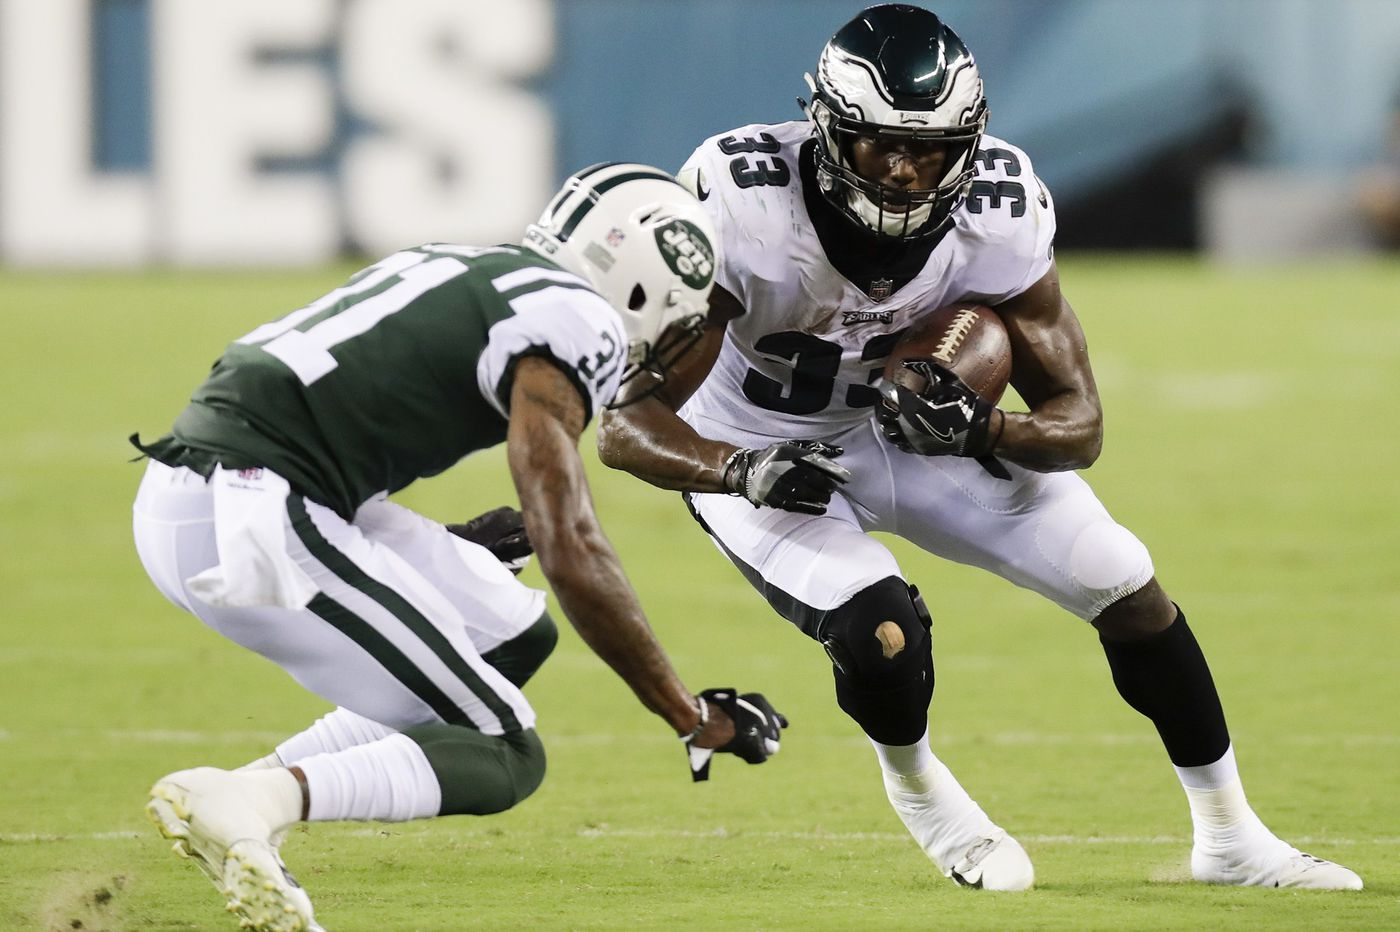 Waived by the Eagles, Josh Adams still has to travel that long and winding road to the NFL | Mike Sielski